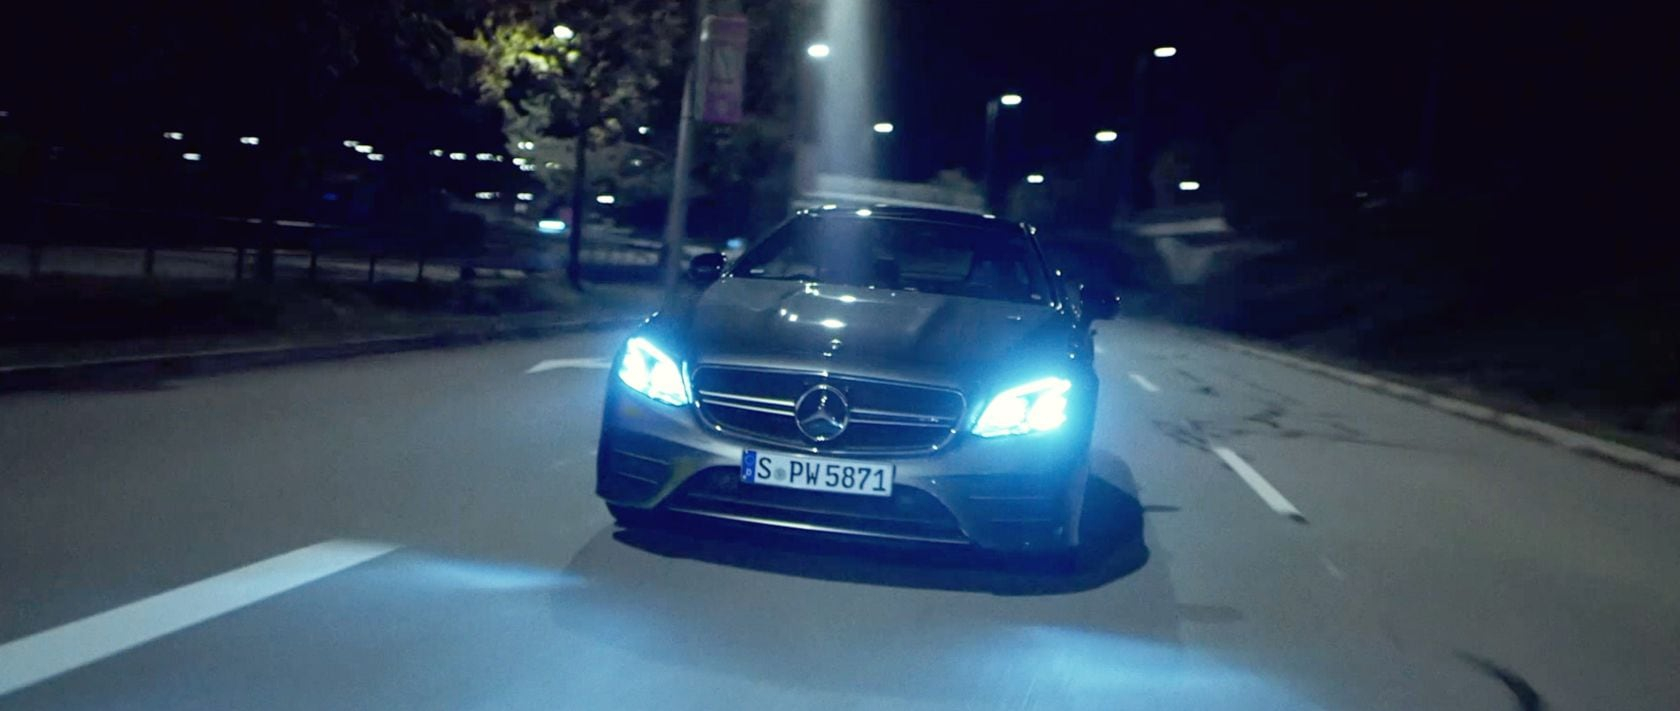 Mercedes-Benz #MBvideocar: The Mercedes-AMG E 53 4MATIC+ Coupé (C 238) in selenite grey at night.